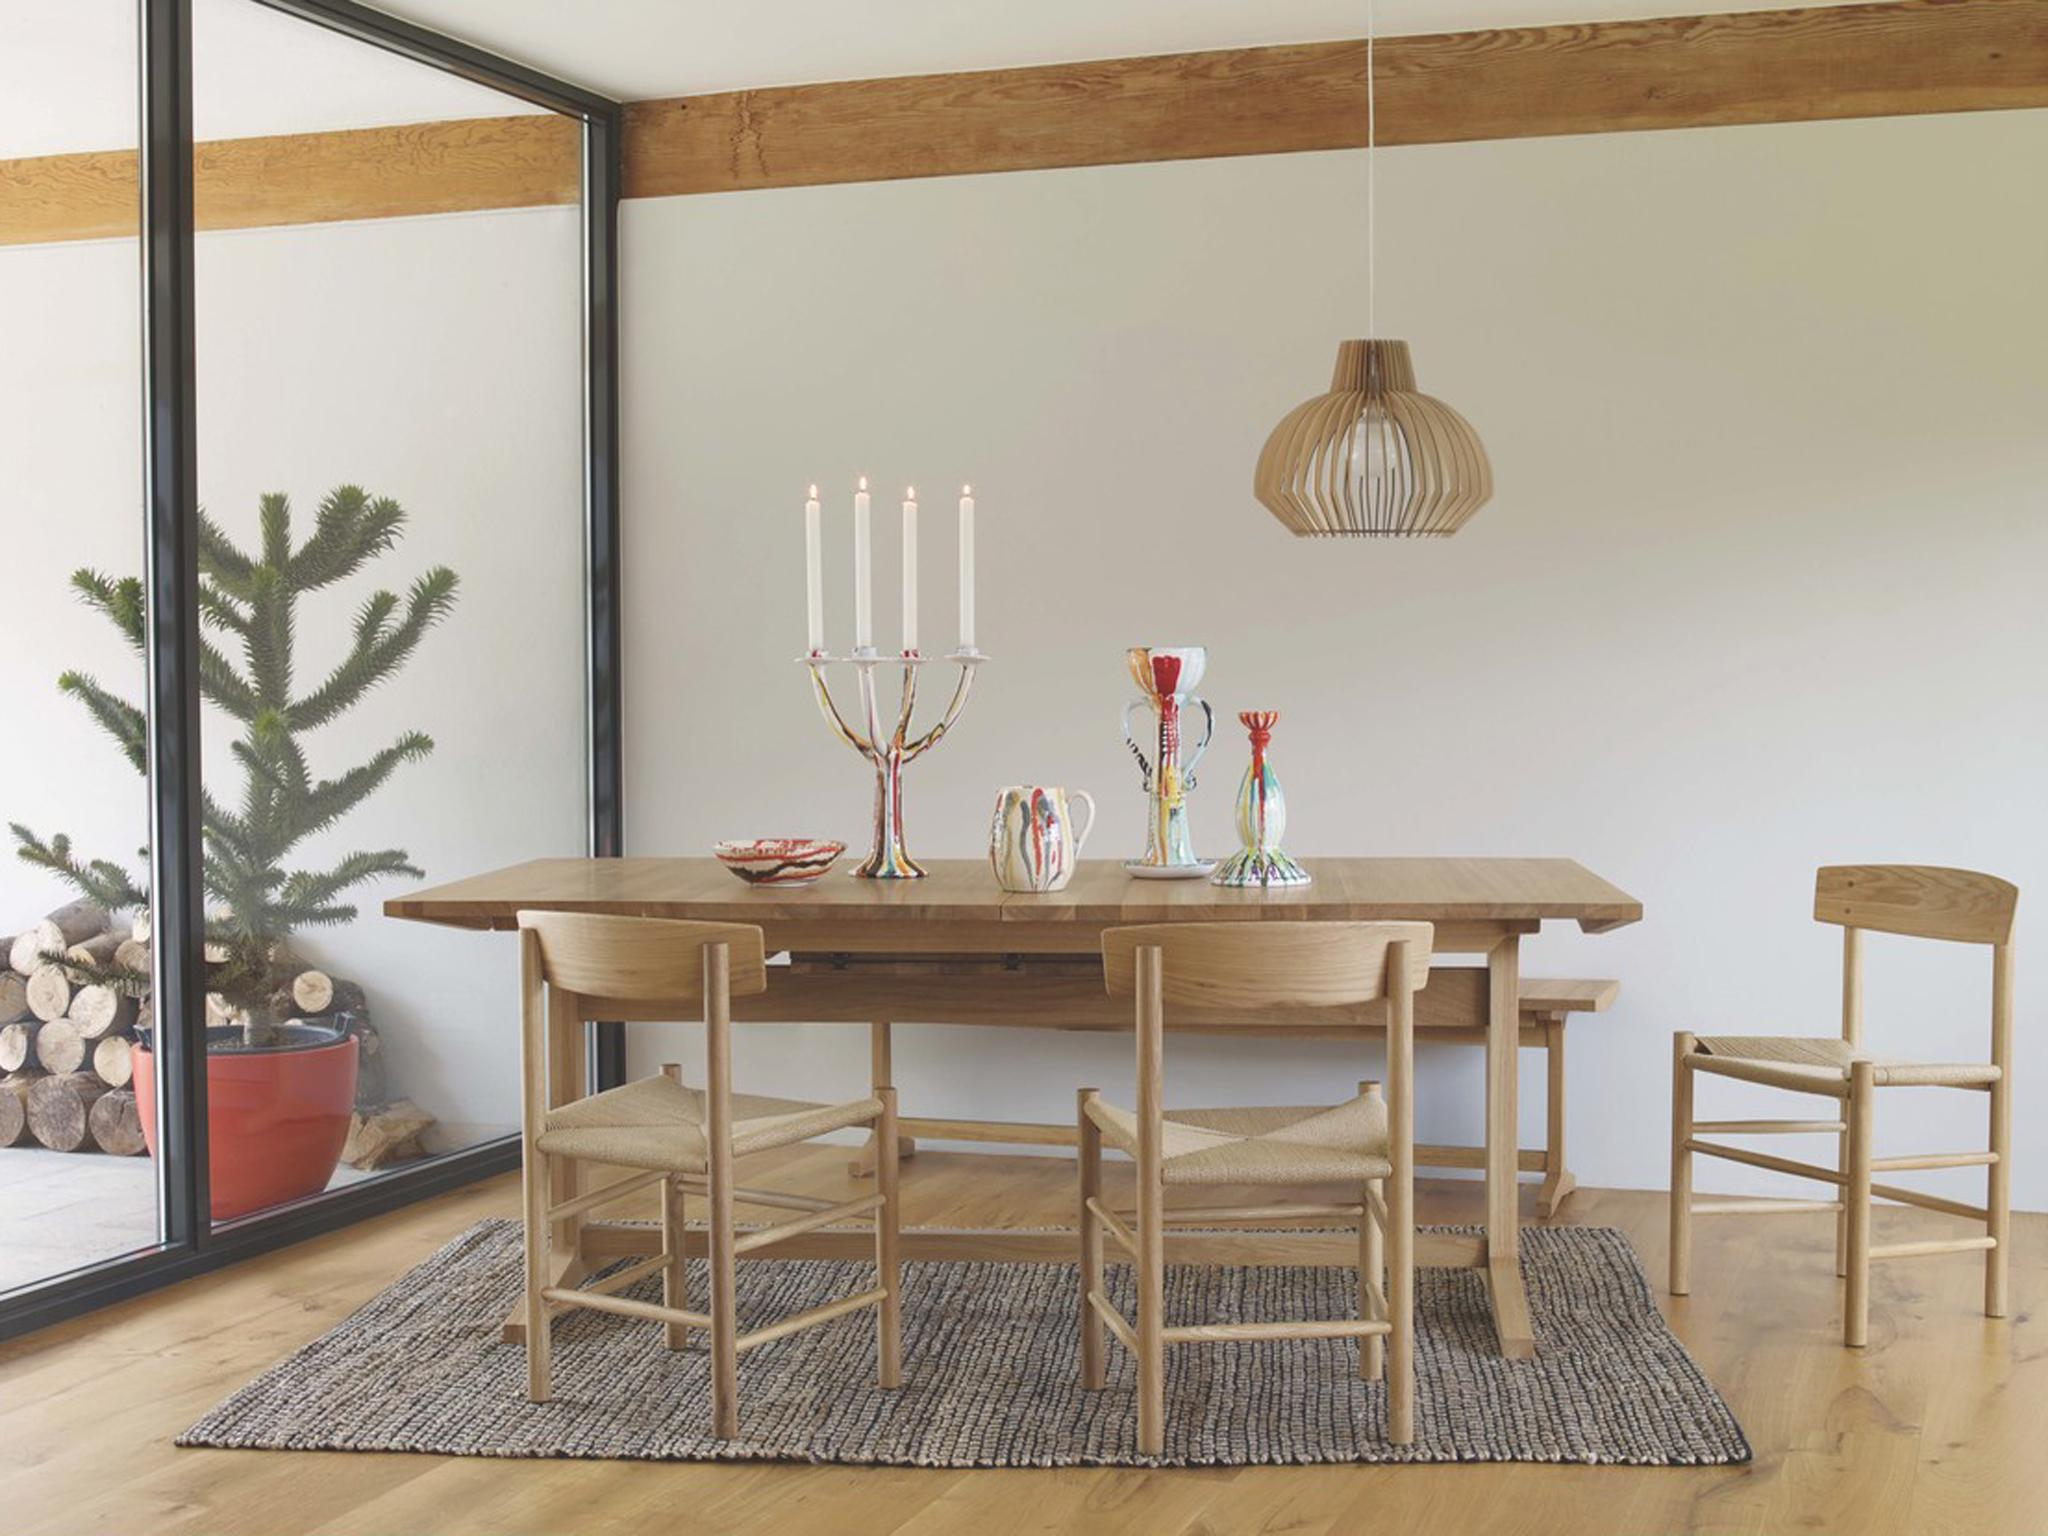 Best Dining Tables top 10 best dining tables for your living room_3 dining tables top 10 best dining tables 10 Best Extendable Dining Tables The Independent